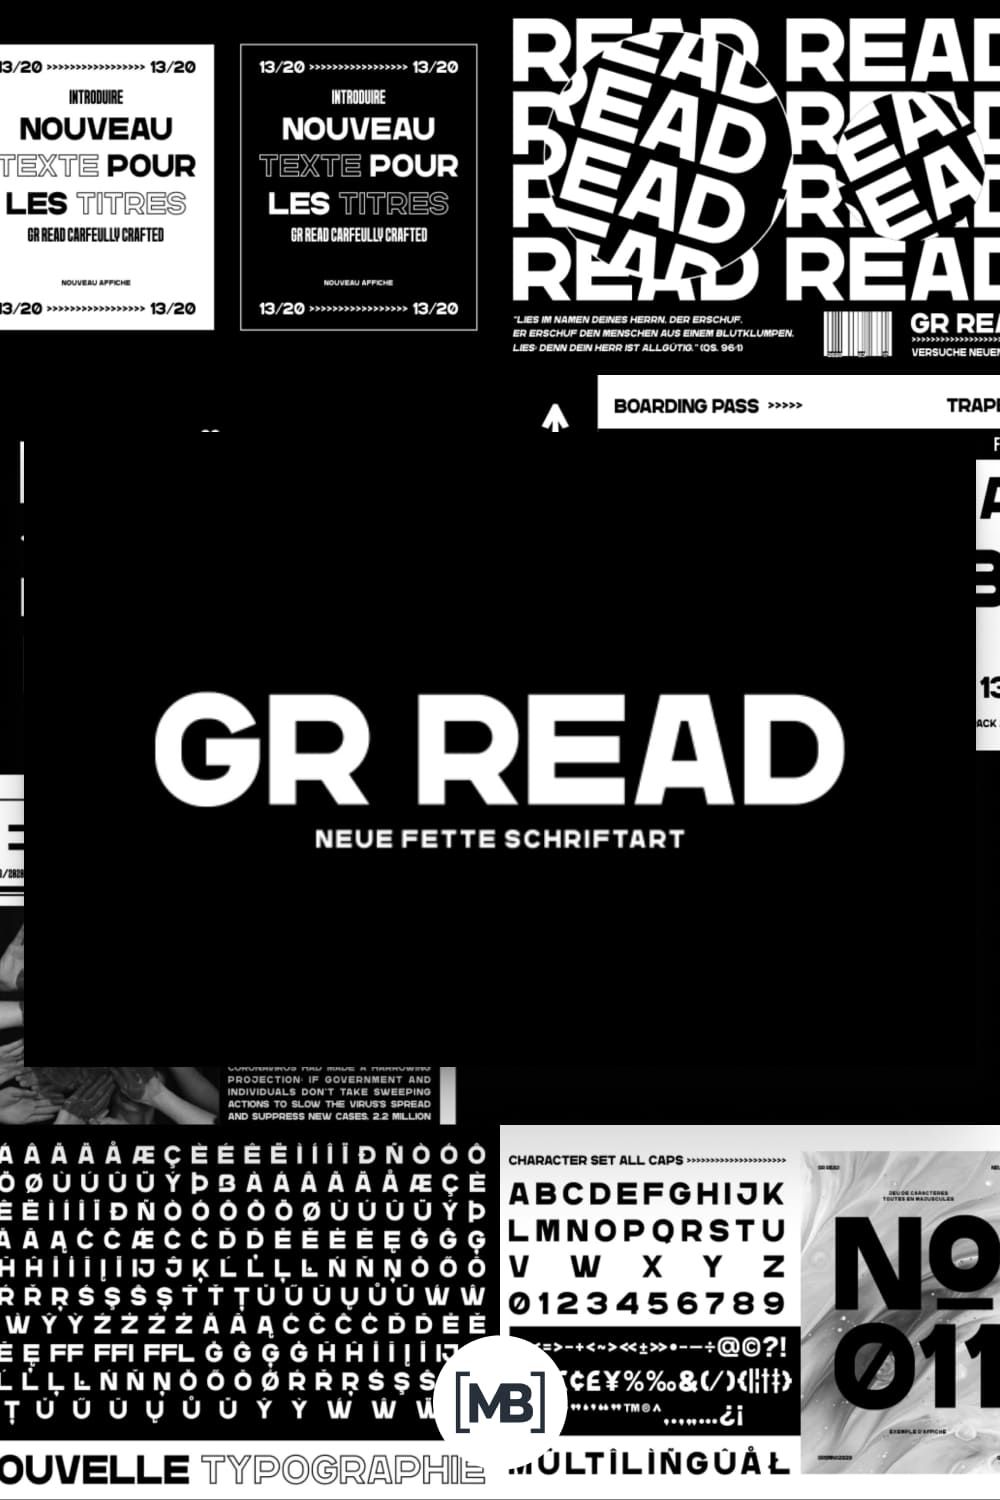 Bold and lined typeface for a modern feel.